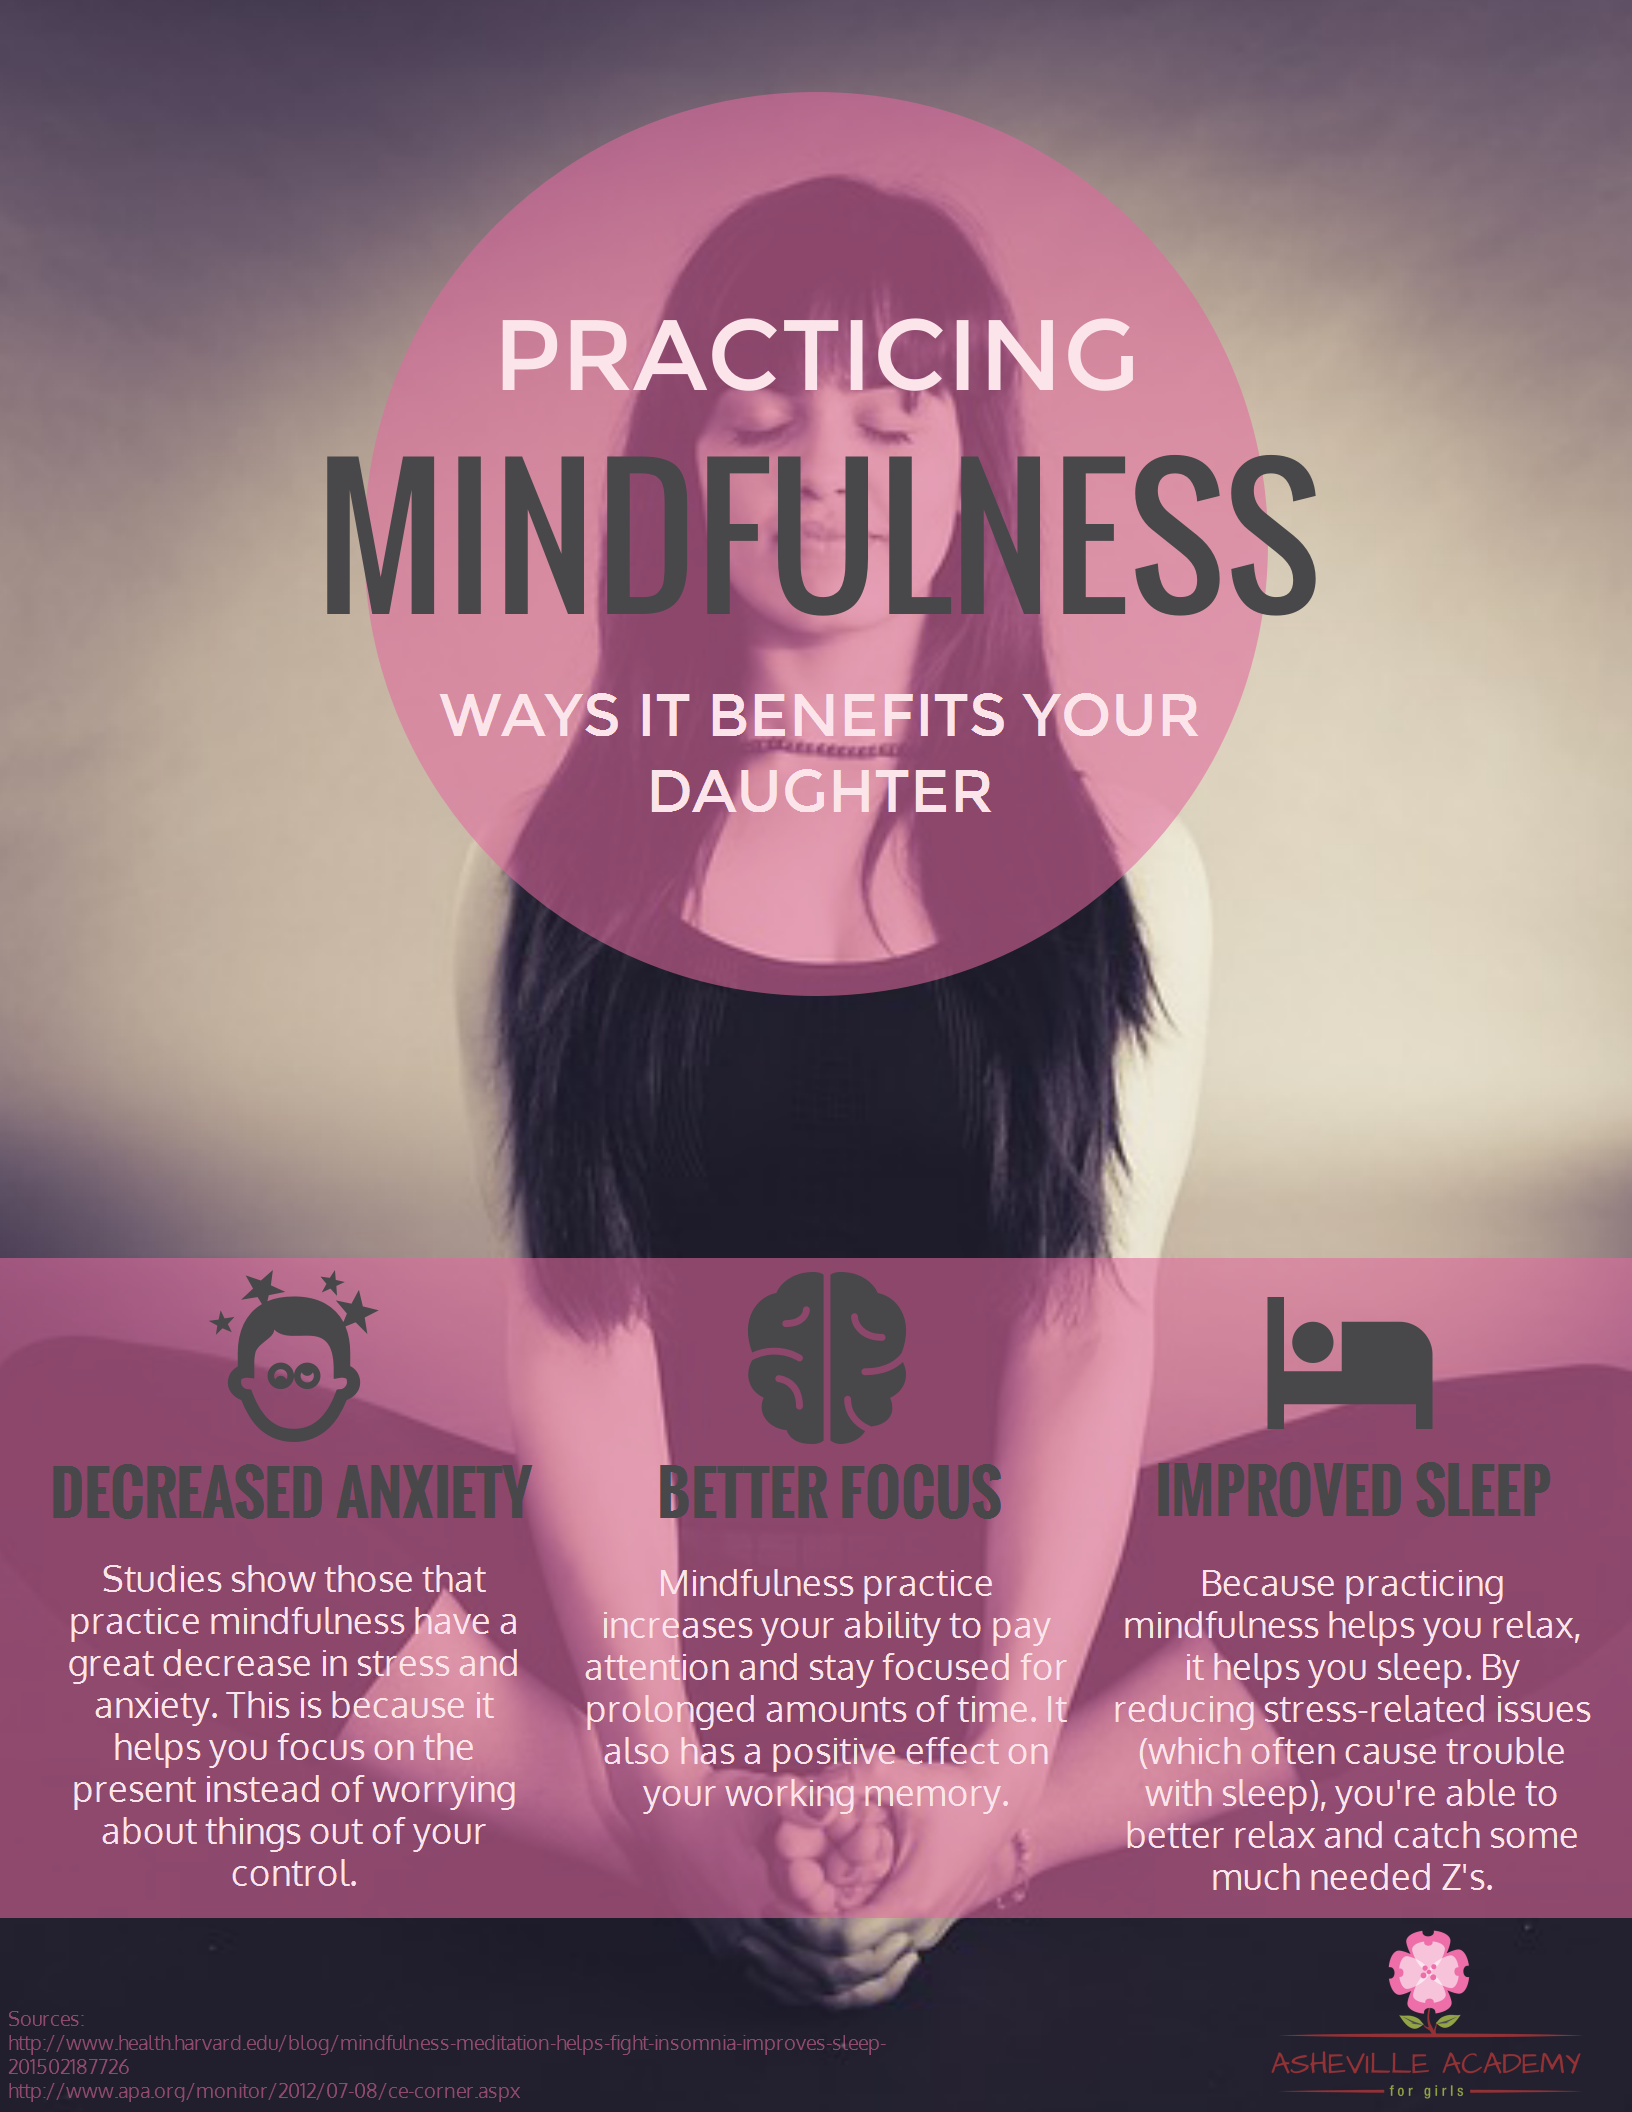 Practicing Mindfulness Benefits AAG (1)